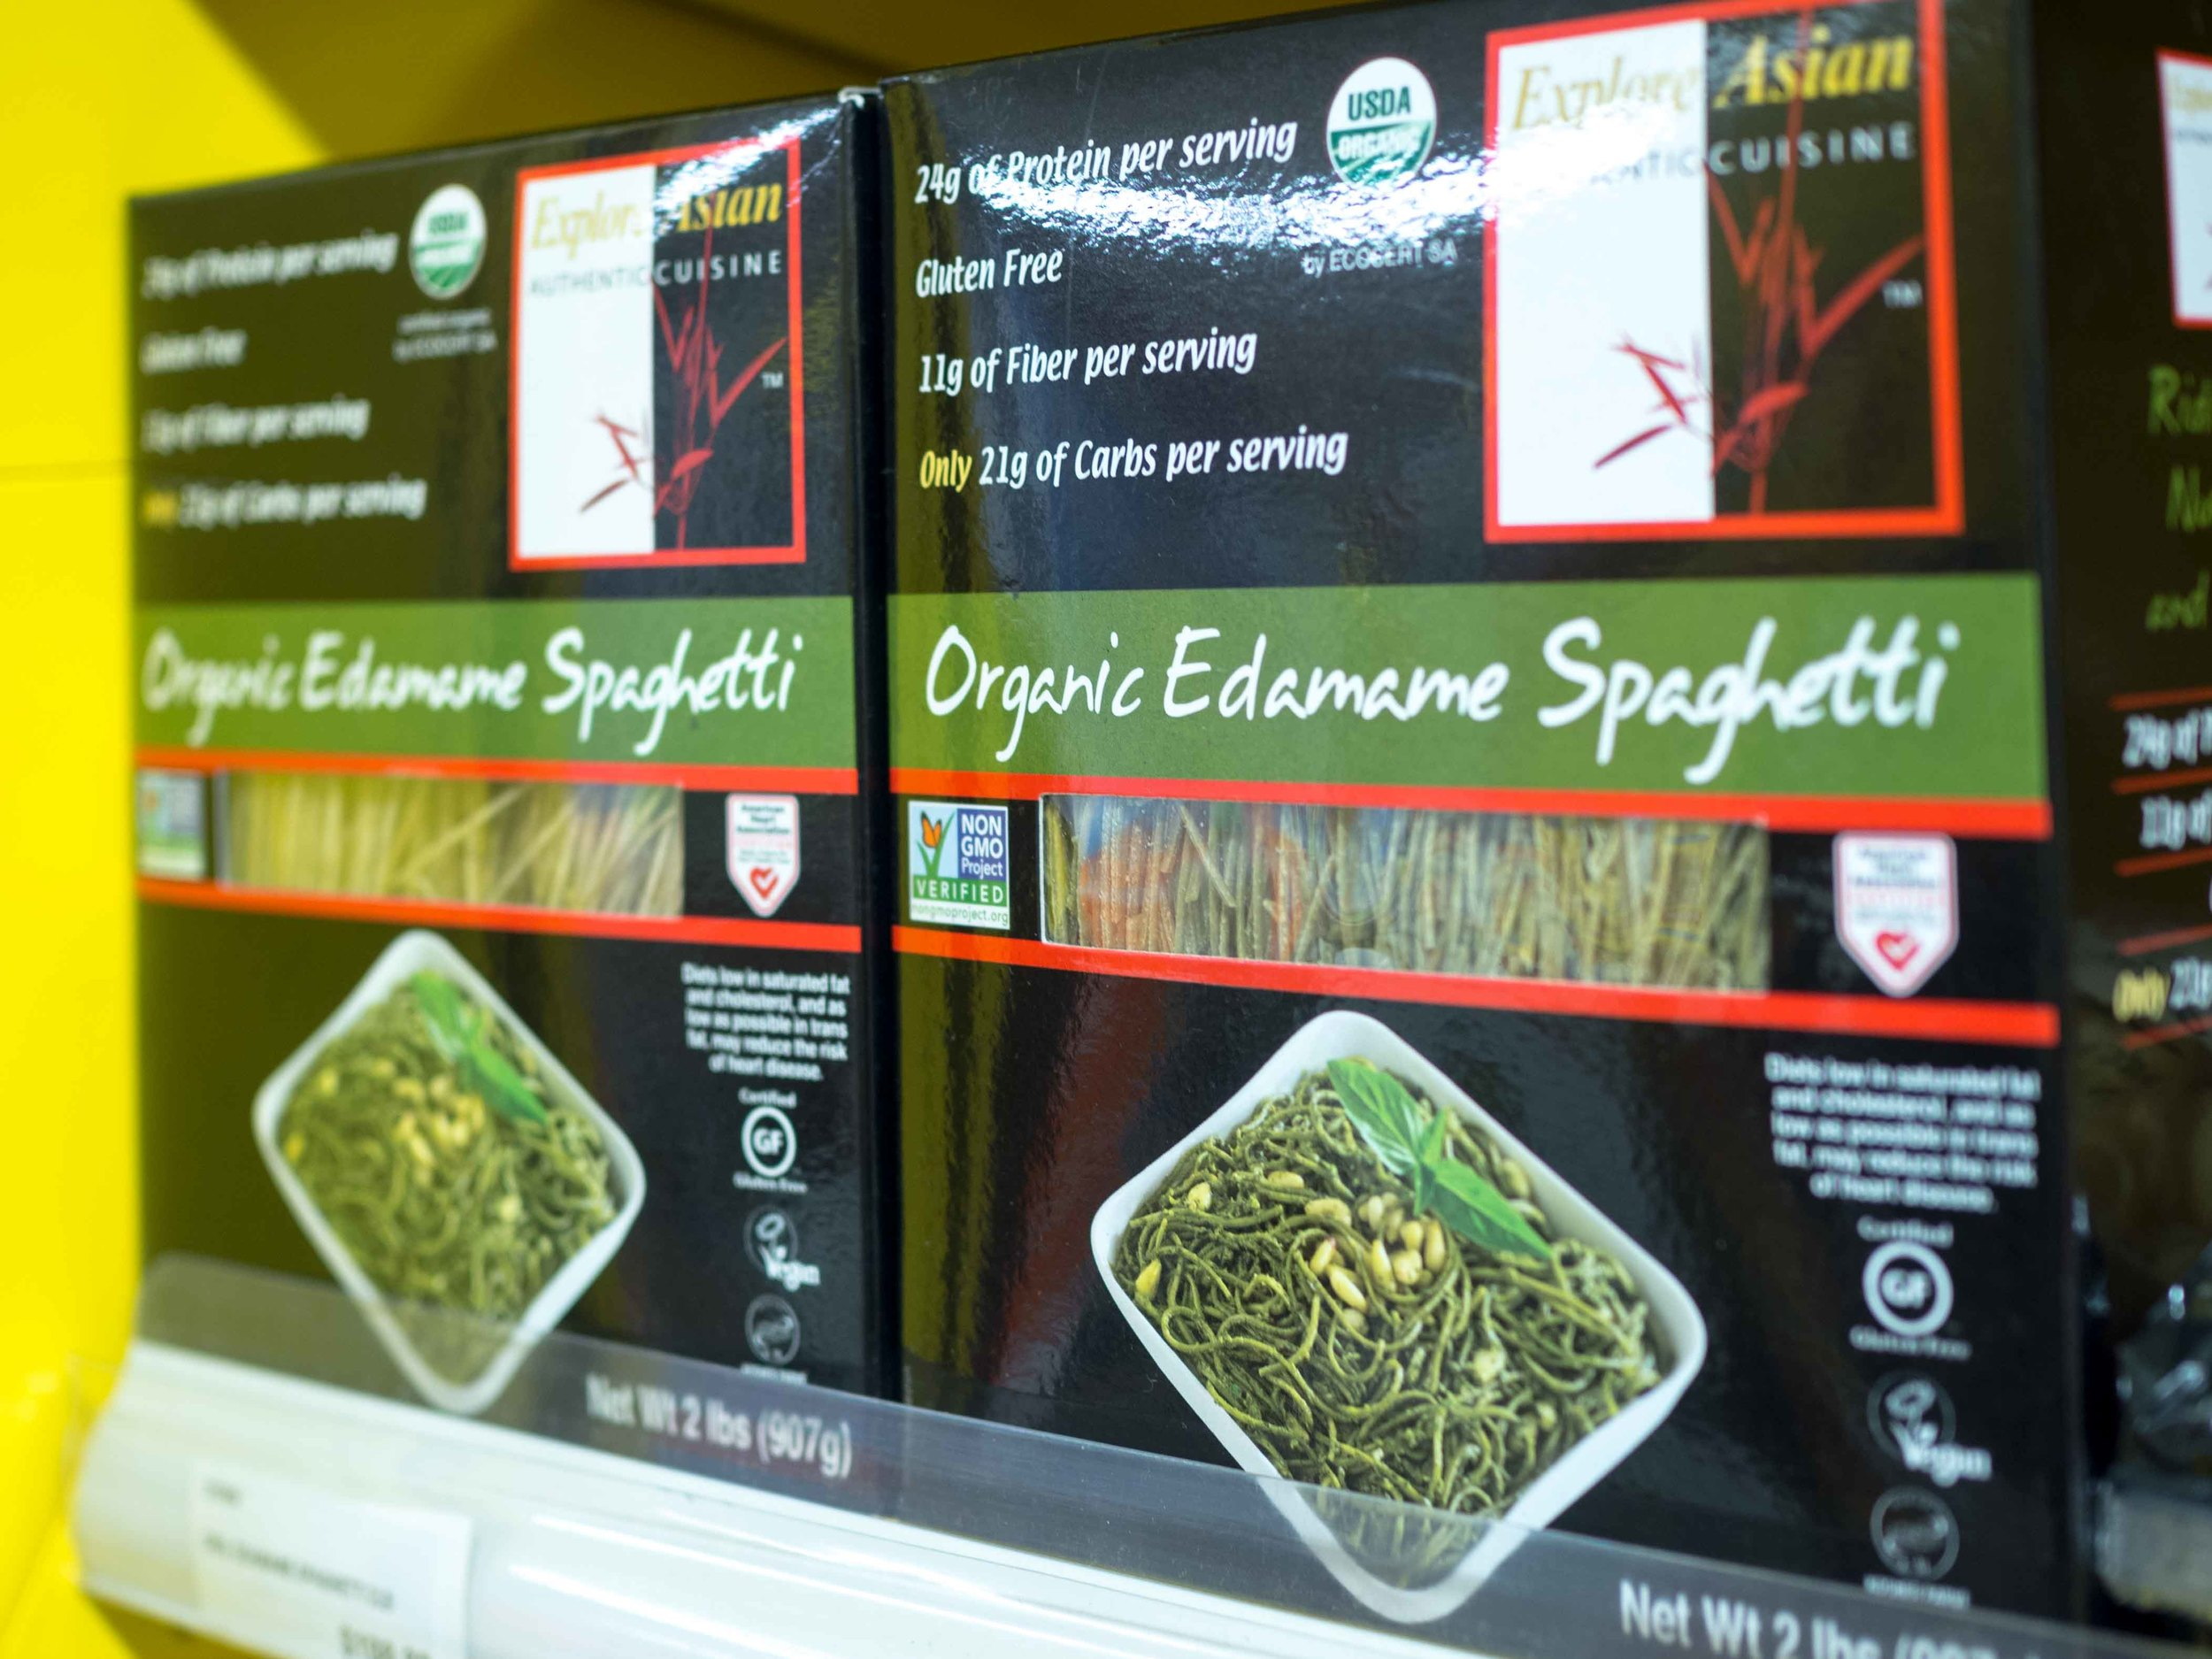 Explore Asian Organic Edamae Spaghetti